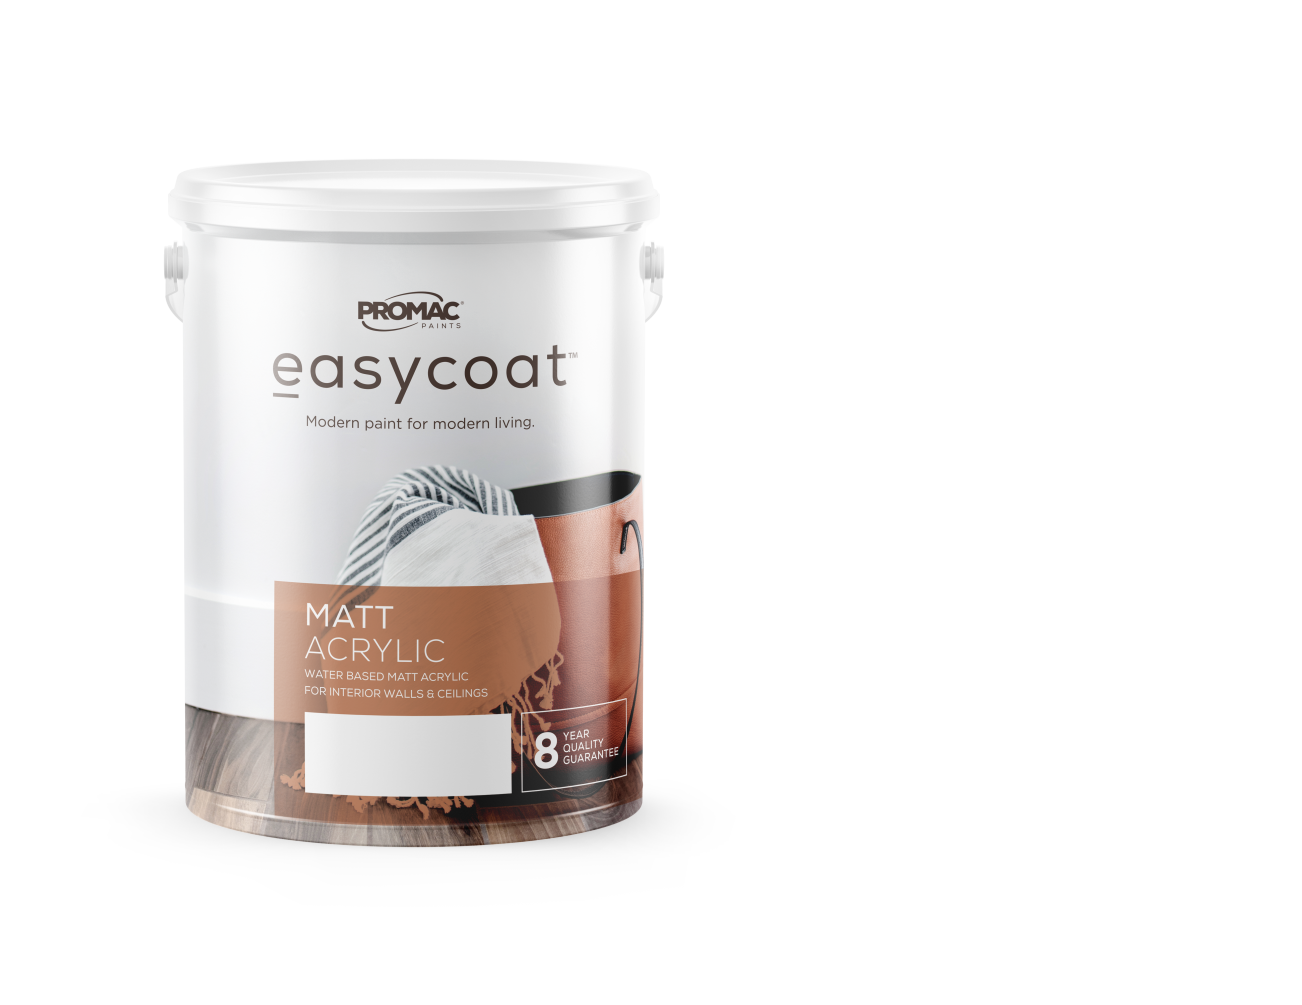 MATT ACRYLIC - WATER BASEDPromac Easycoat Matt is an acrylic wall coating, which has been specially formulated to decorate interior surfaces.